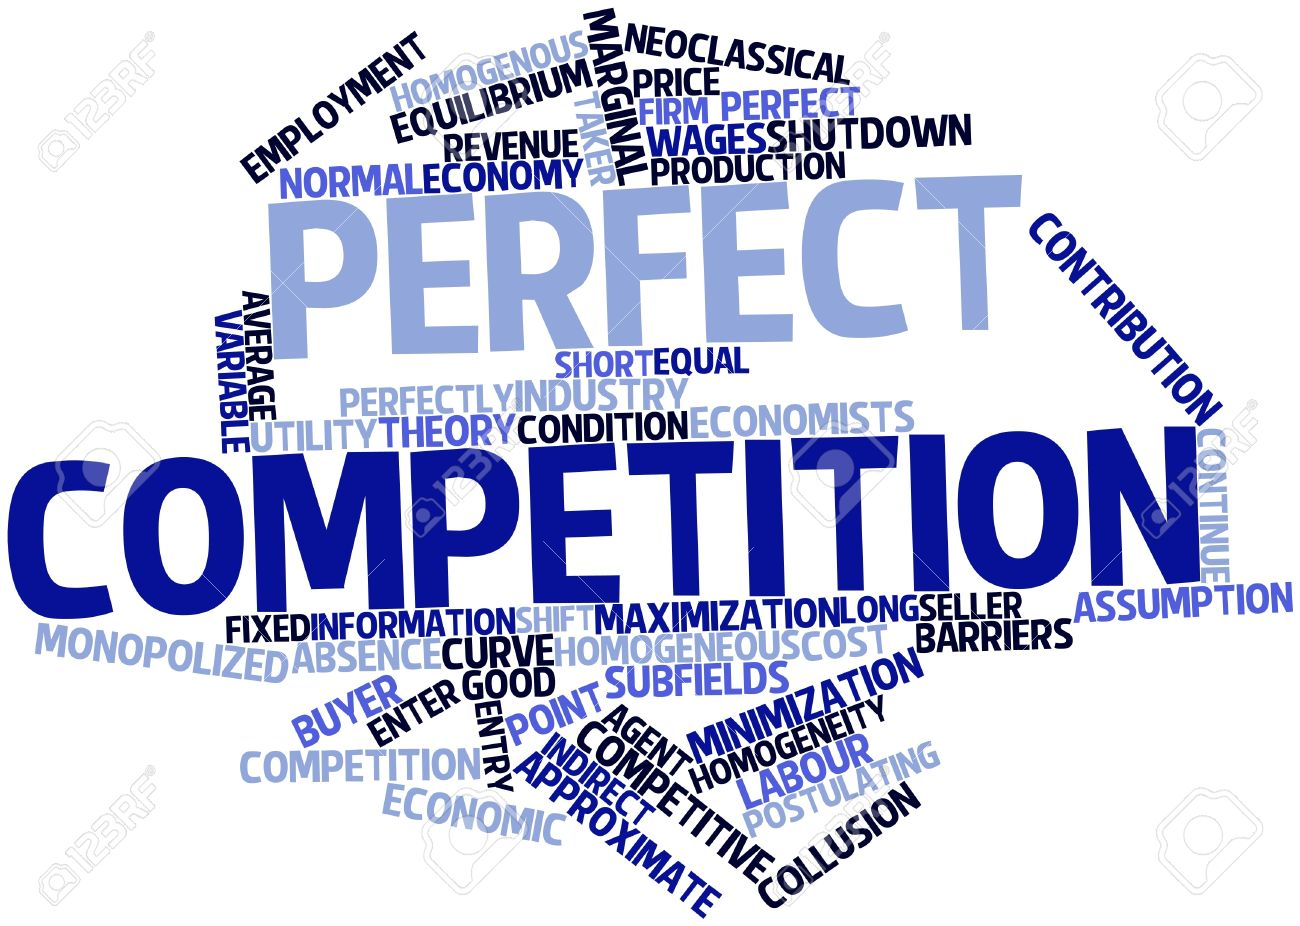 Price and Output Determination under Perfect Competion